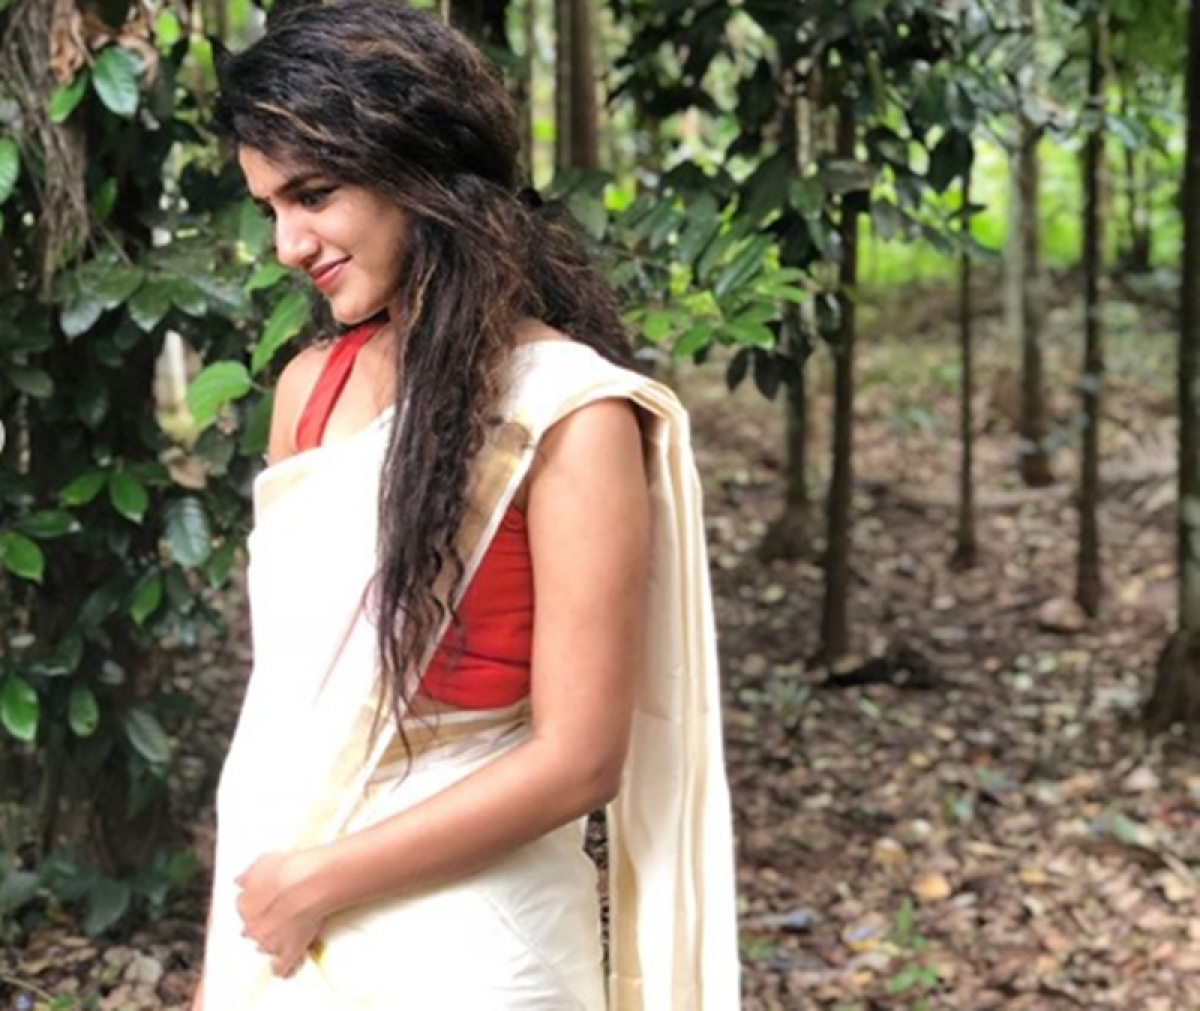 See Pics: Wink queen Priya Prakash Varrier's traditional white and golden saree look will drive you crazy